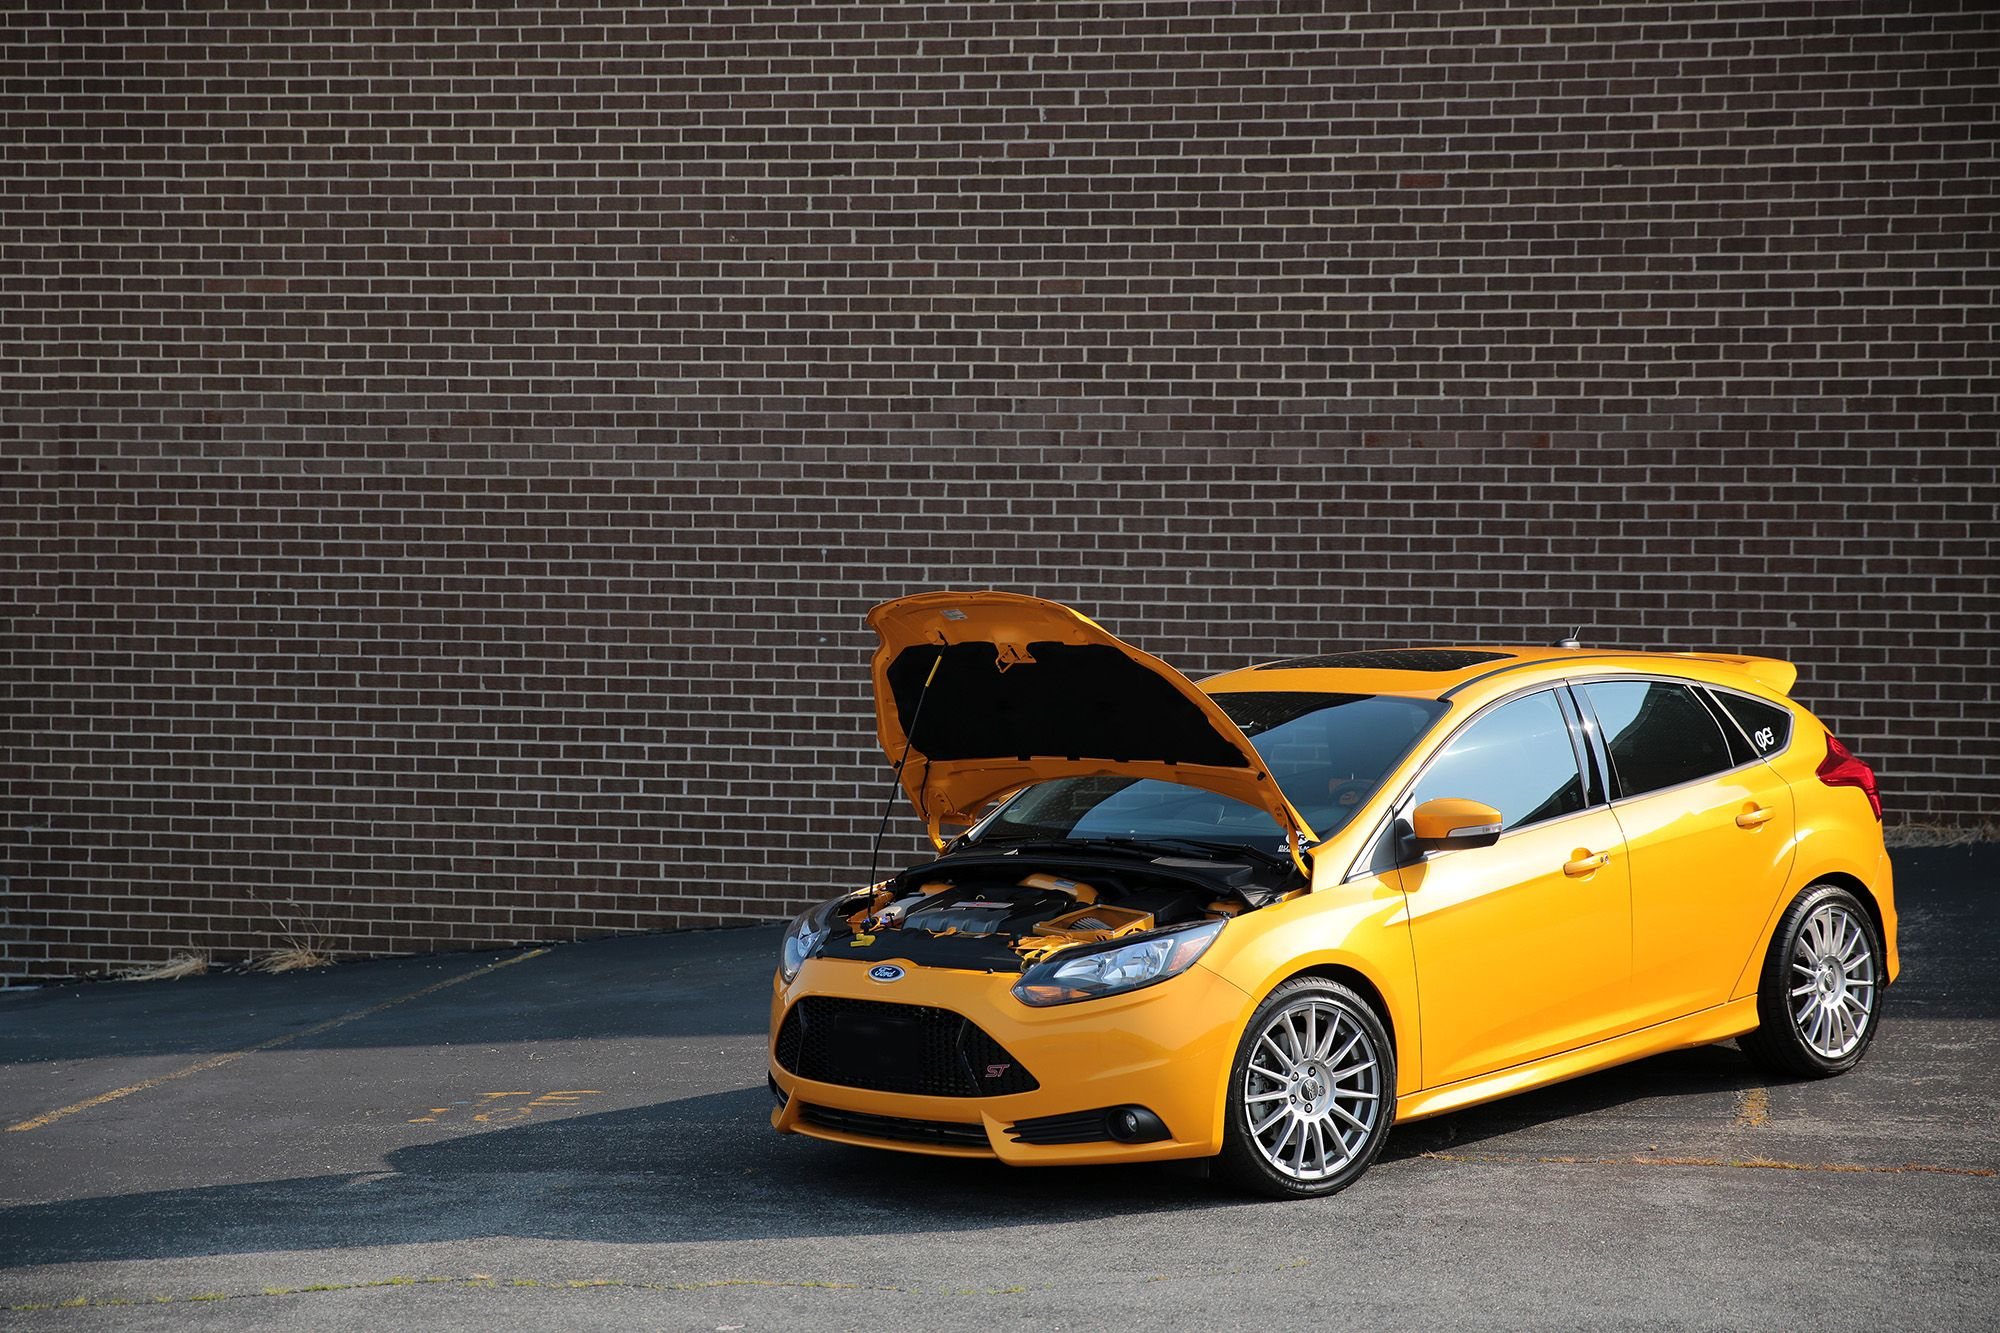 ford focus st mk3 in yellow color tangerine scream ford. Black Bedroom Furniture Sets. Home Design Ideas